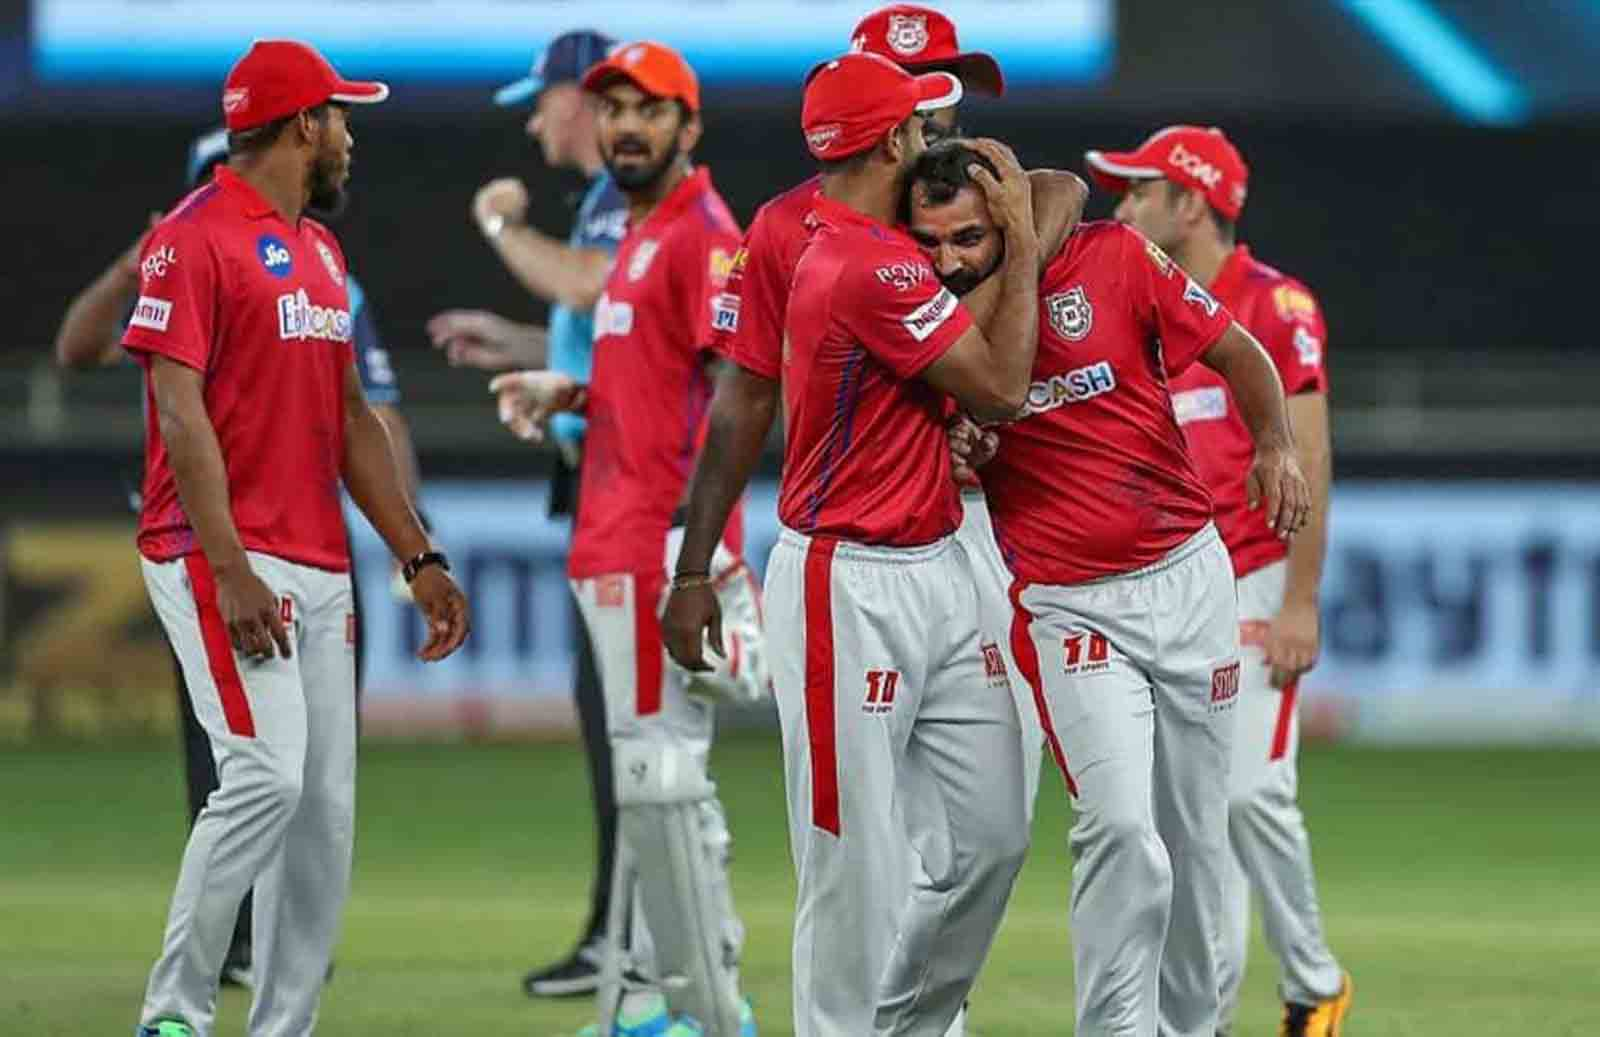 """""""He Wanted To Bowl Six Yorkers In Super Over,"""" KL Rahul Lauds Mohammed Shami's Confidence"""